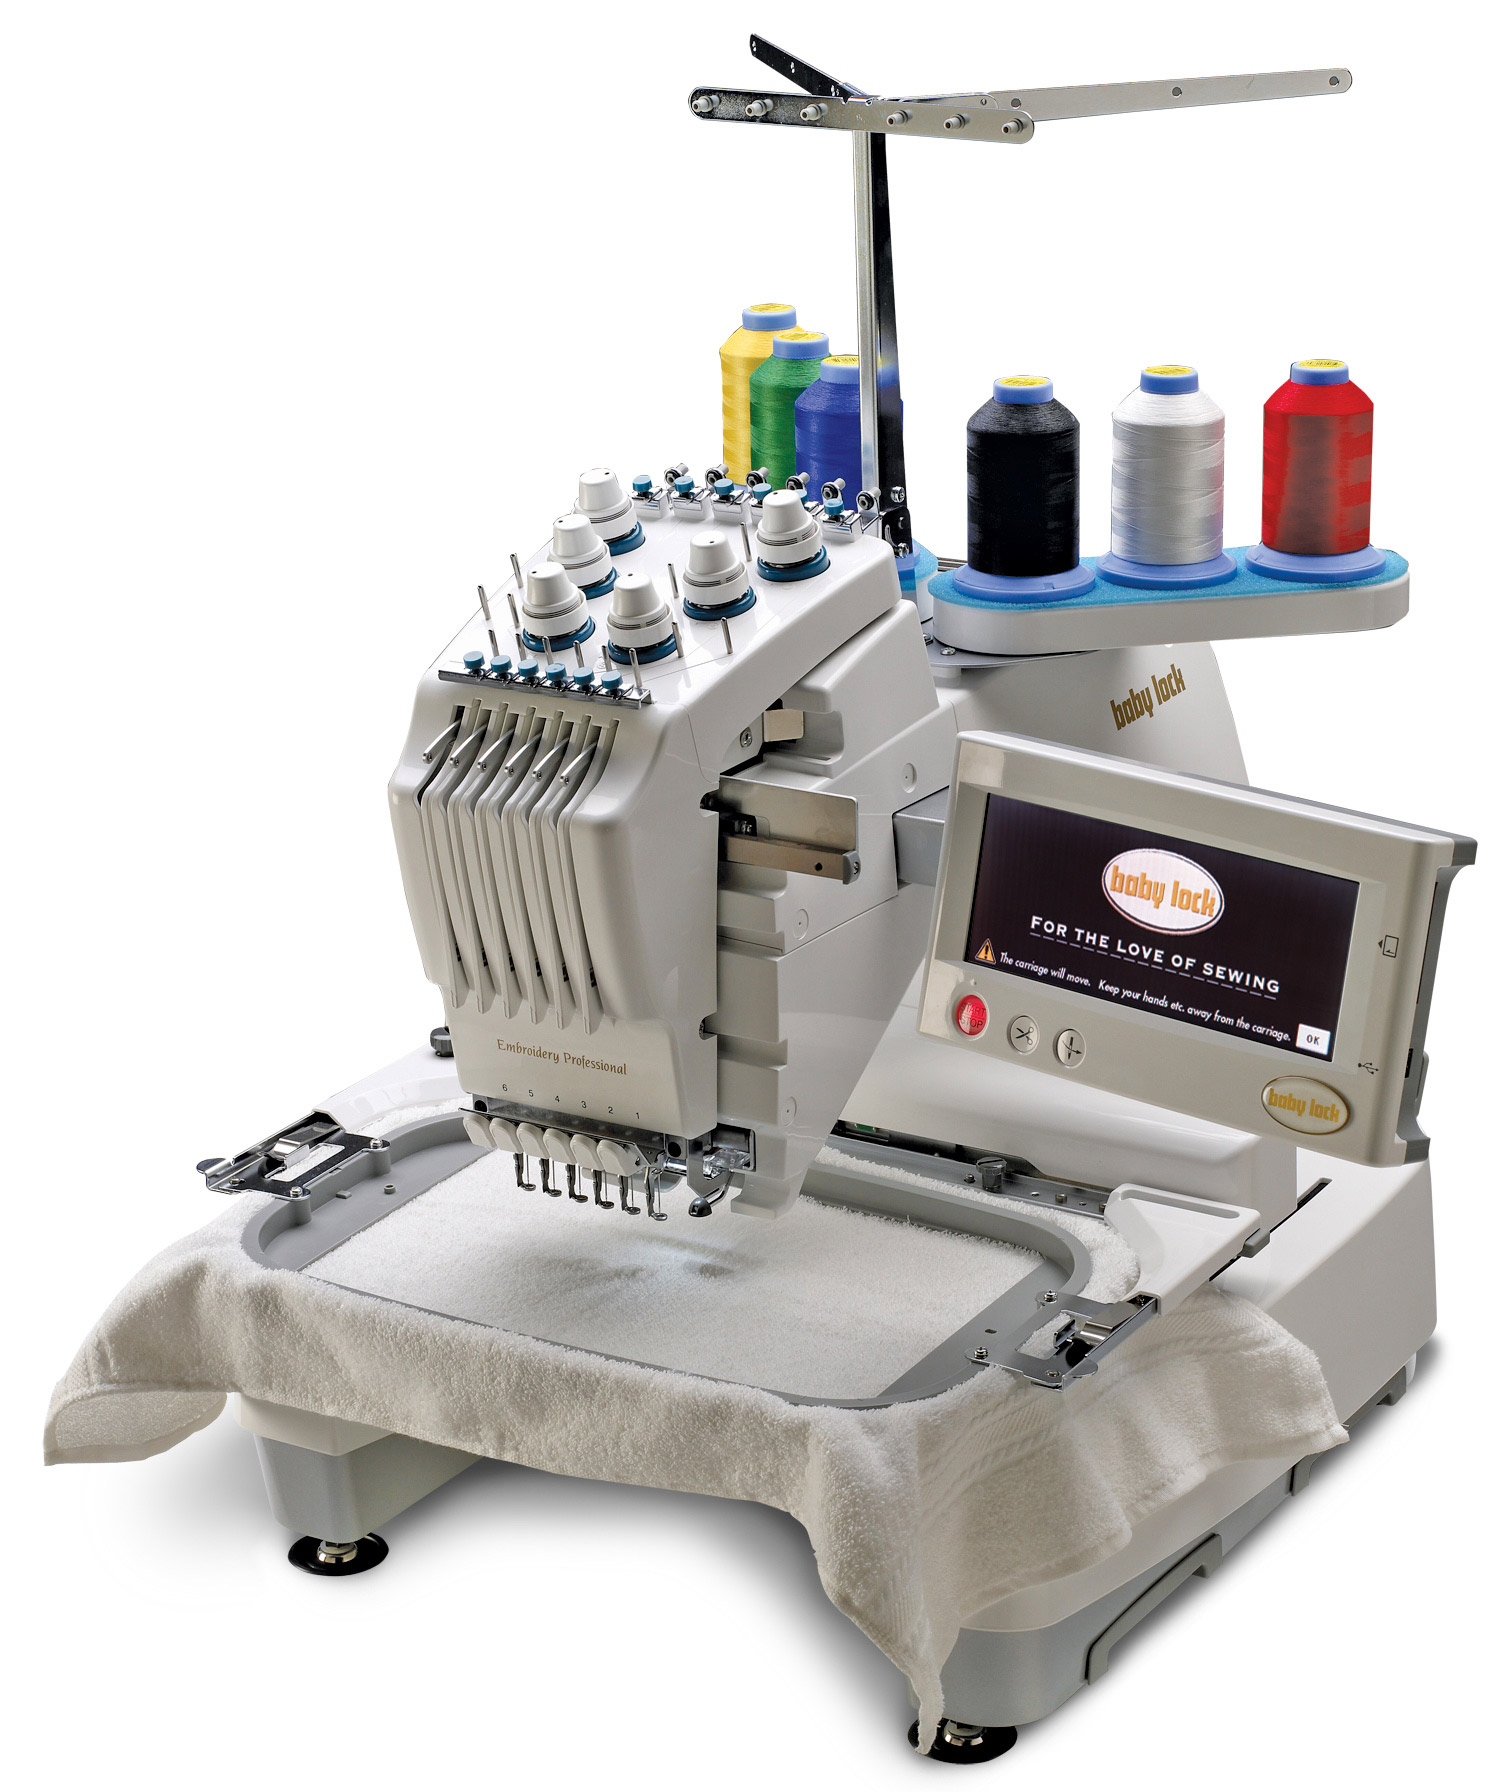 baby lock embroidery machine professional bmp8 rh sewingmachinesplus com Baby Lock BMP6 Baby Lock BMP6 Embroidery Machine